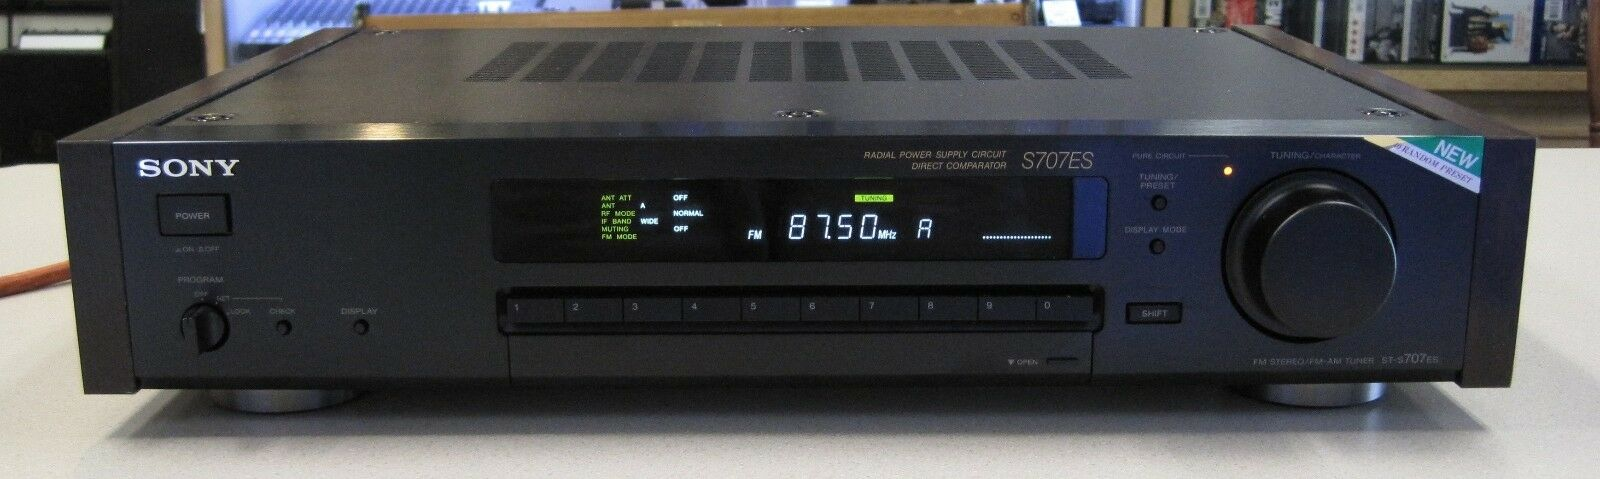 SONY ST-S707ES Black High-End Stereo FM-AM Tuner | Wundr-Shop